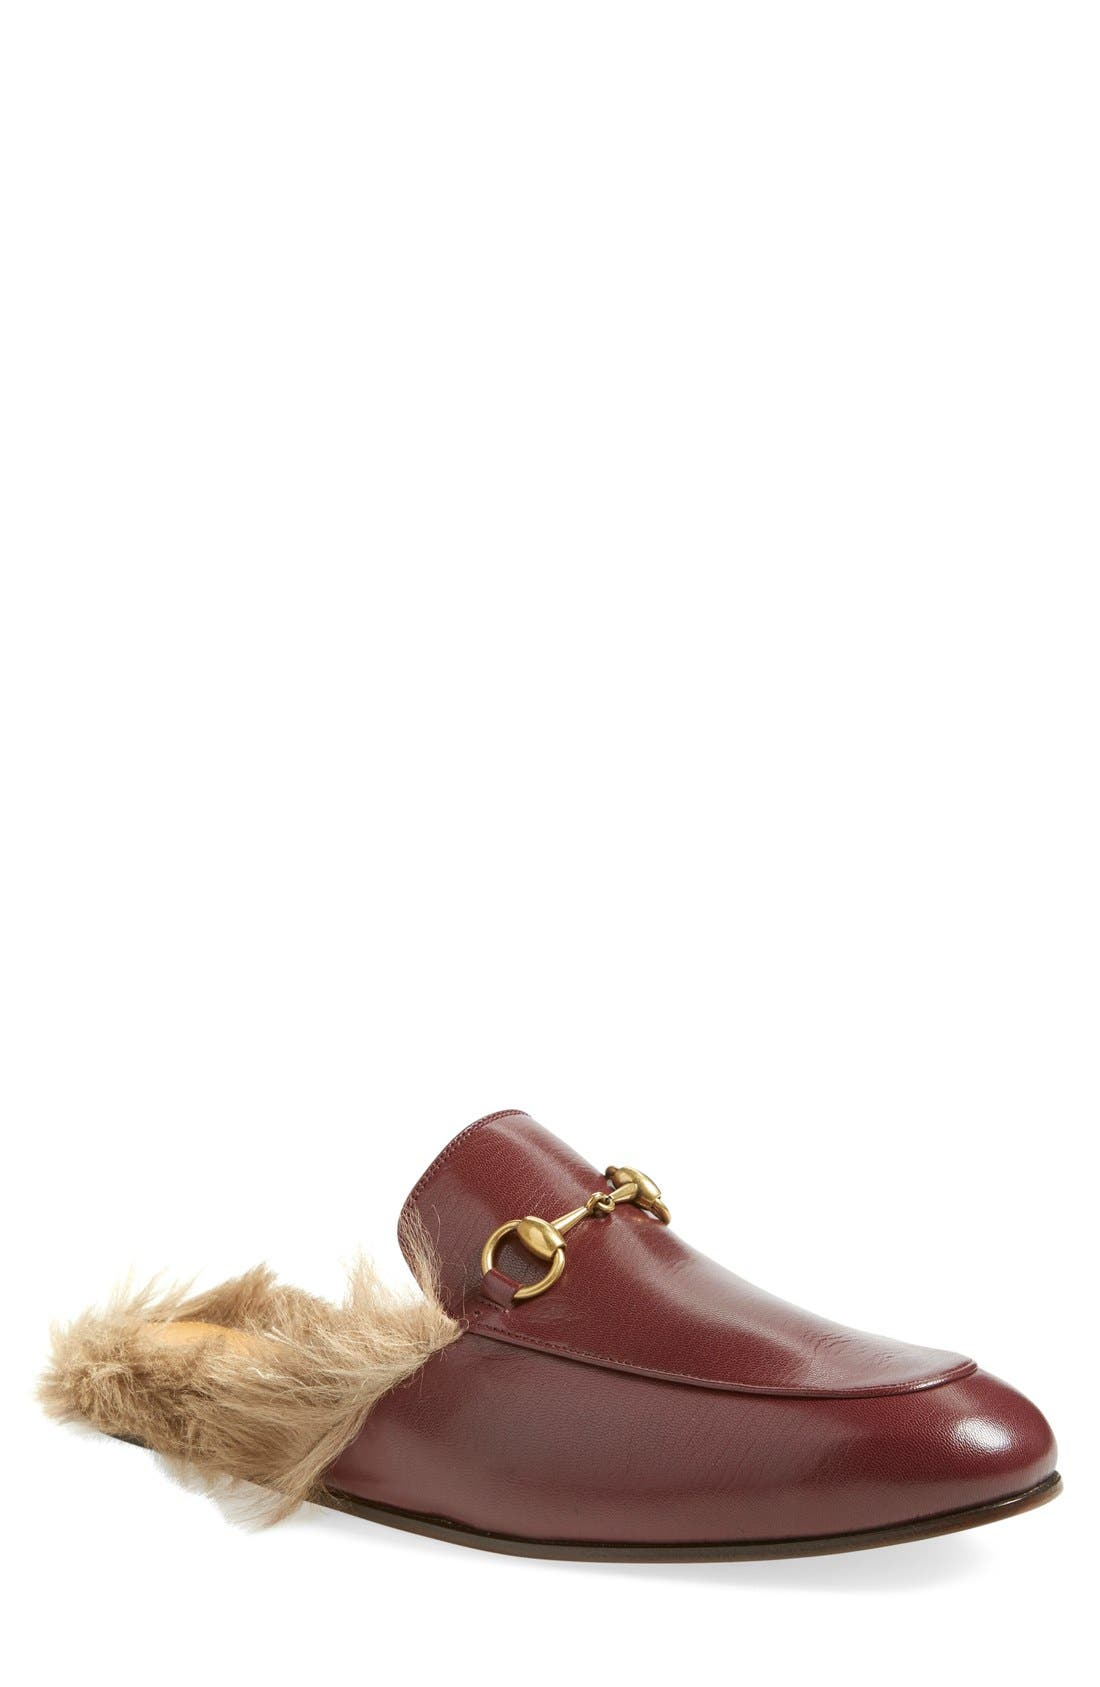 Princetown Genuine Shearling Lined Mule Loafer,                             Main thumbnail 1, color,                             Red/ Tea Leather